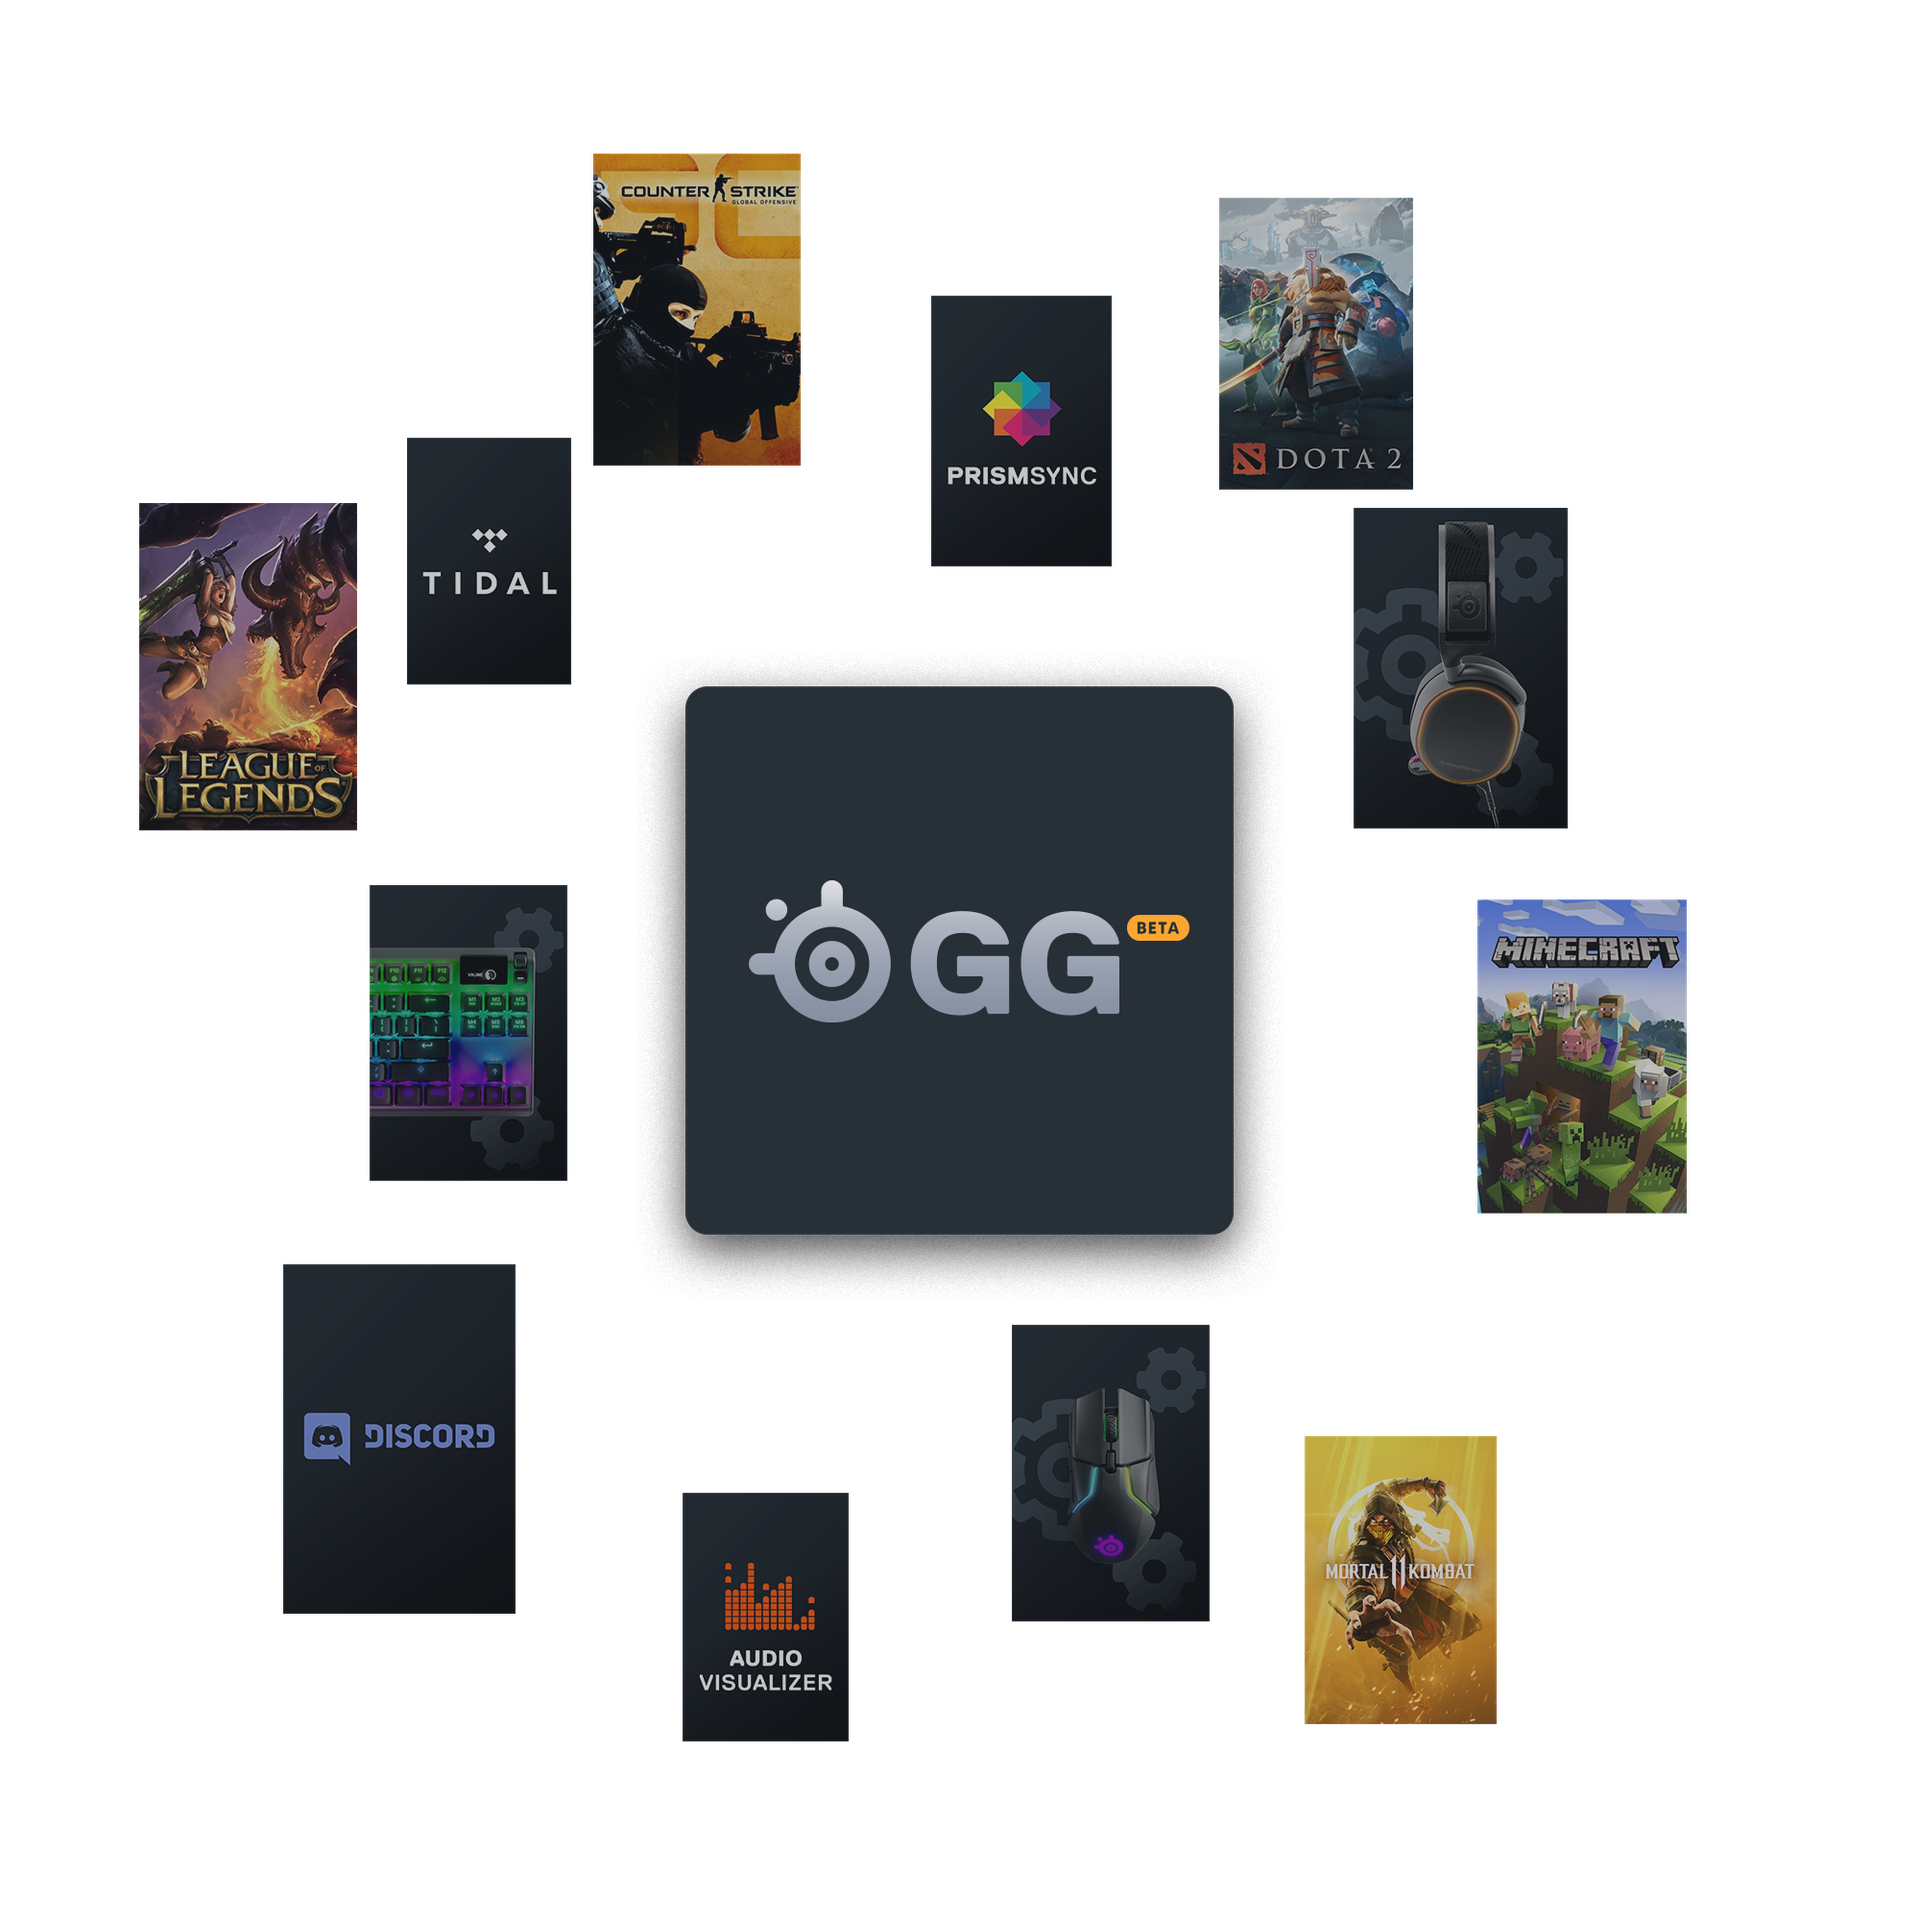 SteelSeries GG BETA; League of Legends, Counter Strike Global Offensive, Tidal, PRISMSYNC, DOTA 2, MINECRAFT, MORTAL KOMBAT 11, AUDIO VISUALIZER, Discord